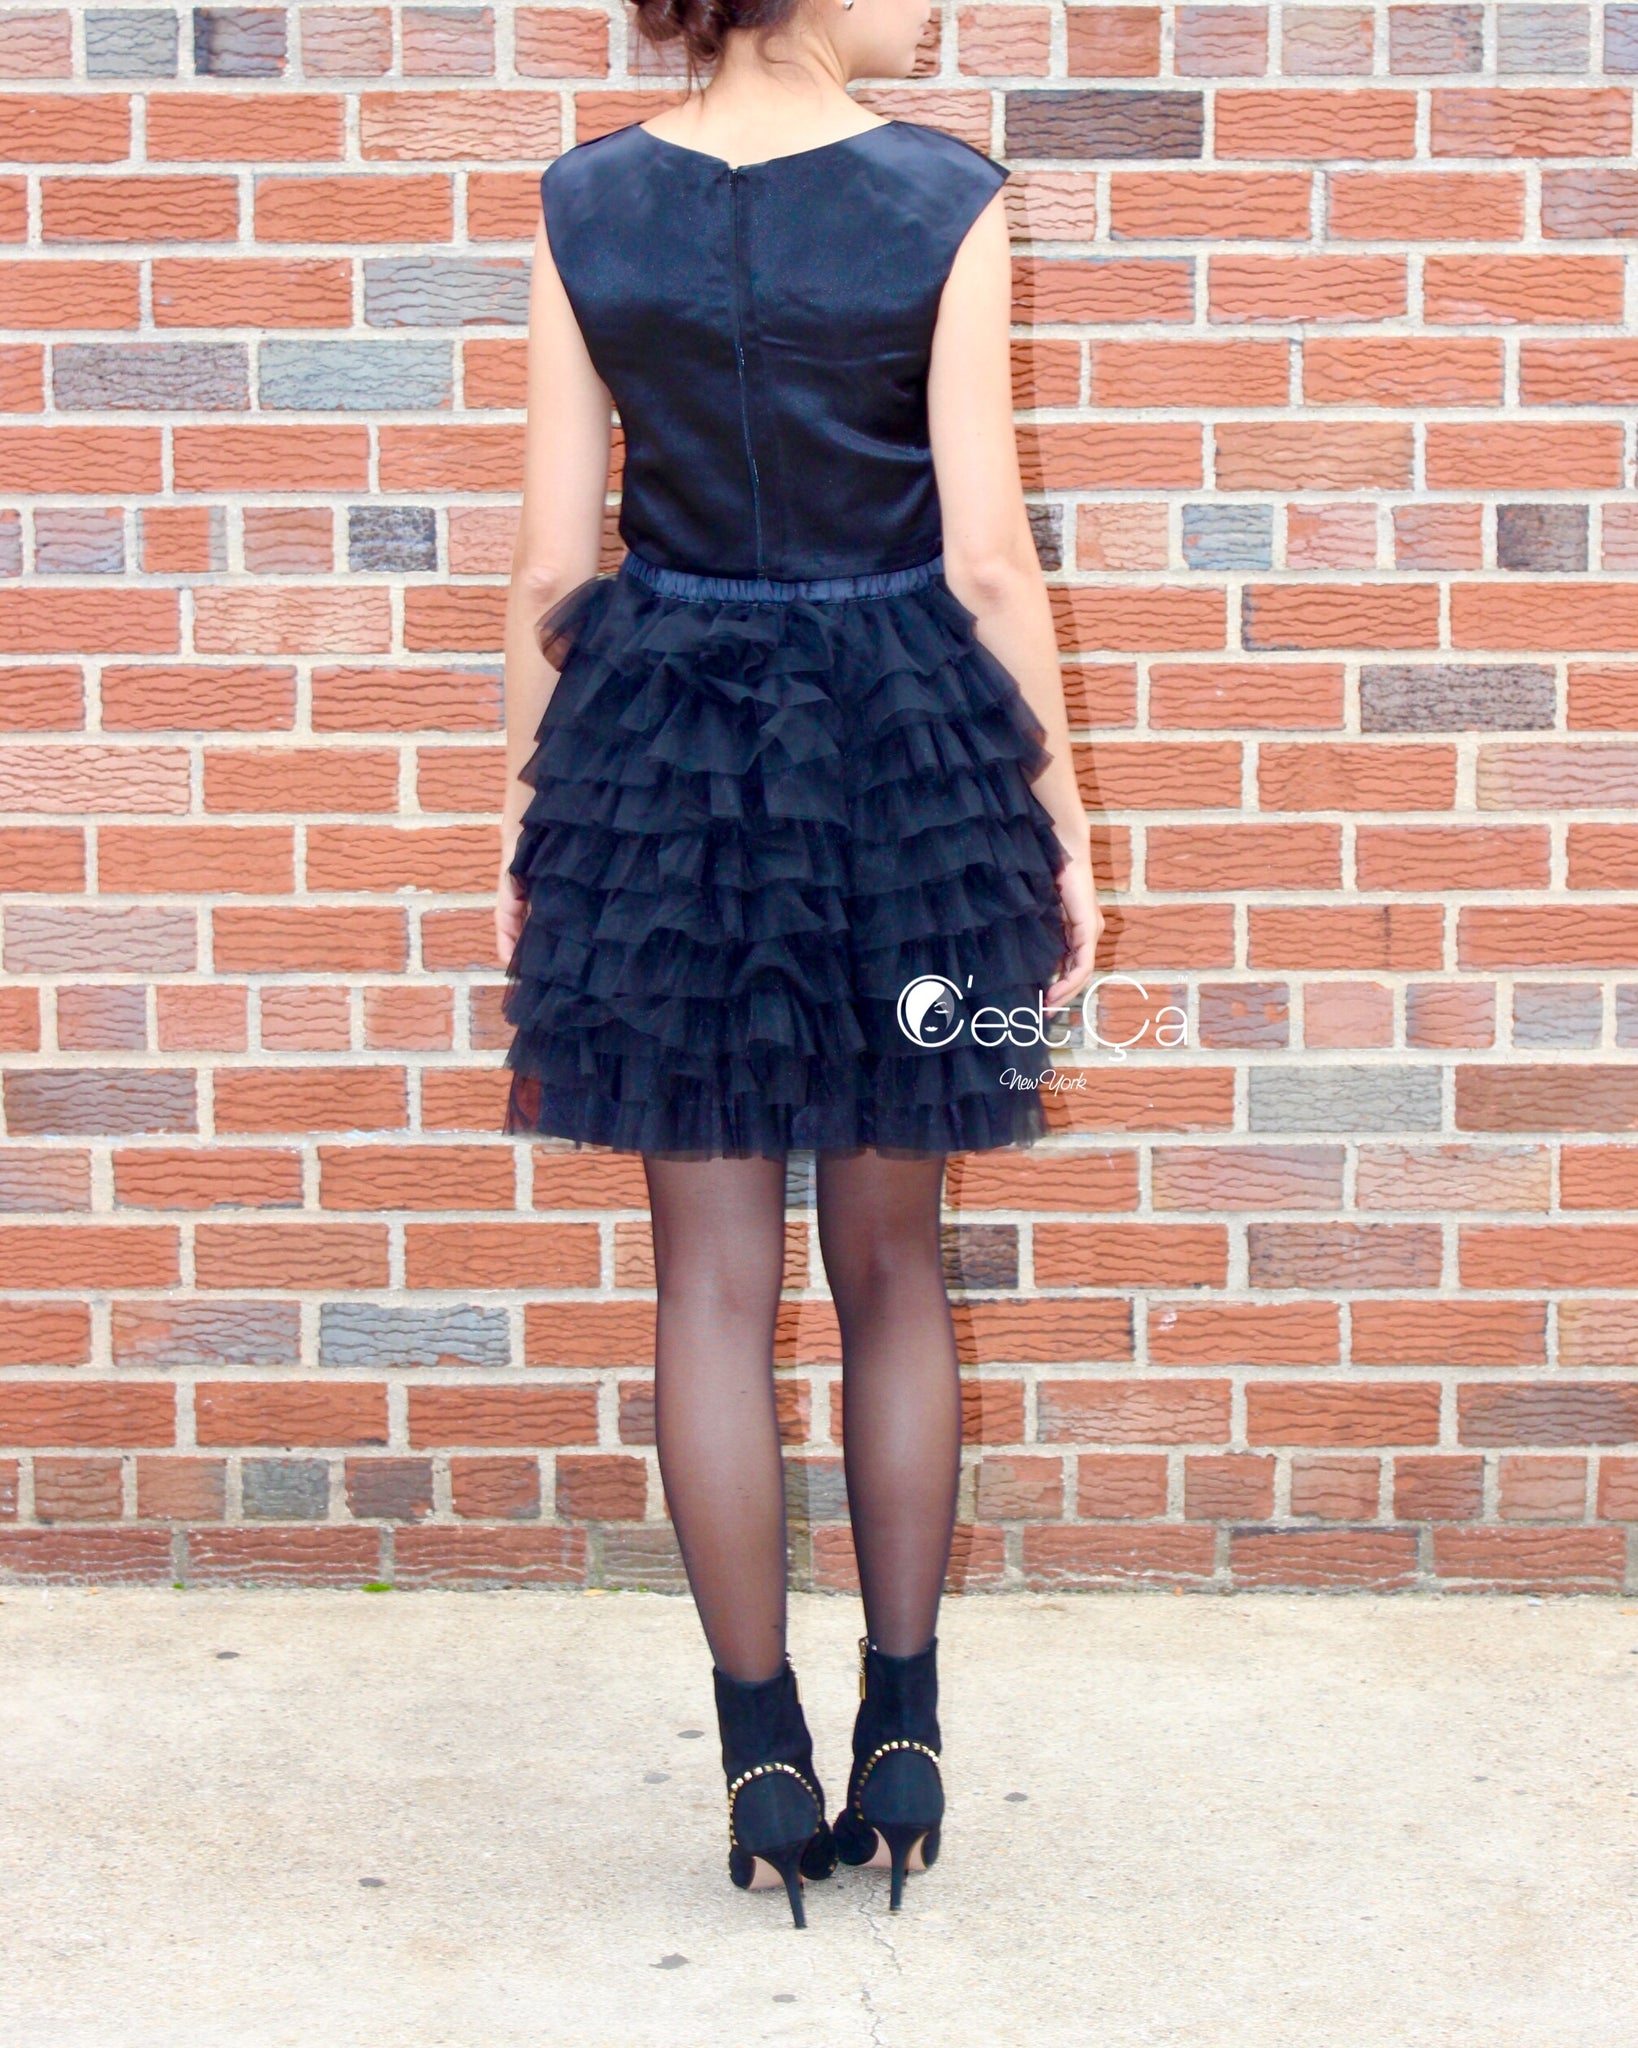 6750716bc90e Celine Black Tiered Mini Tulle Skirt – C est Ça New York